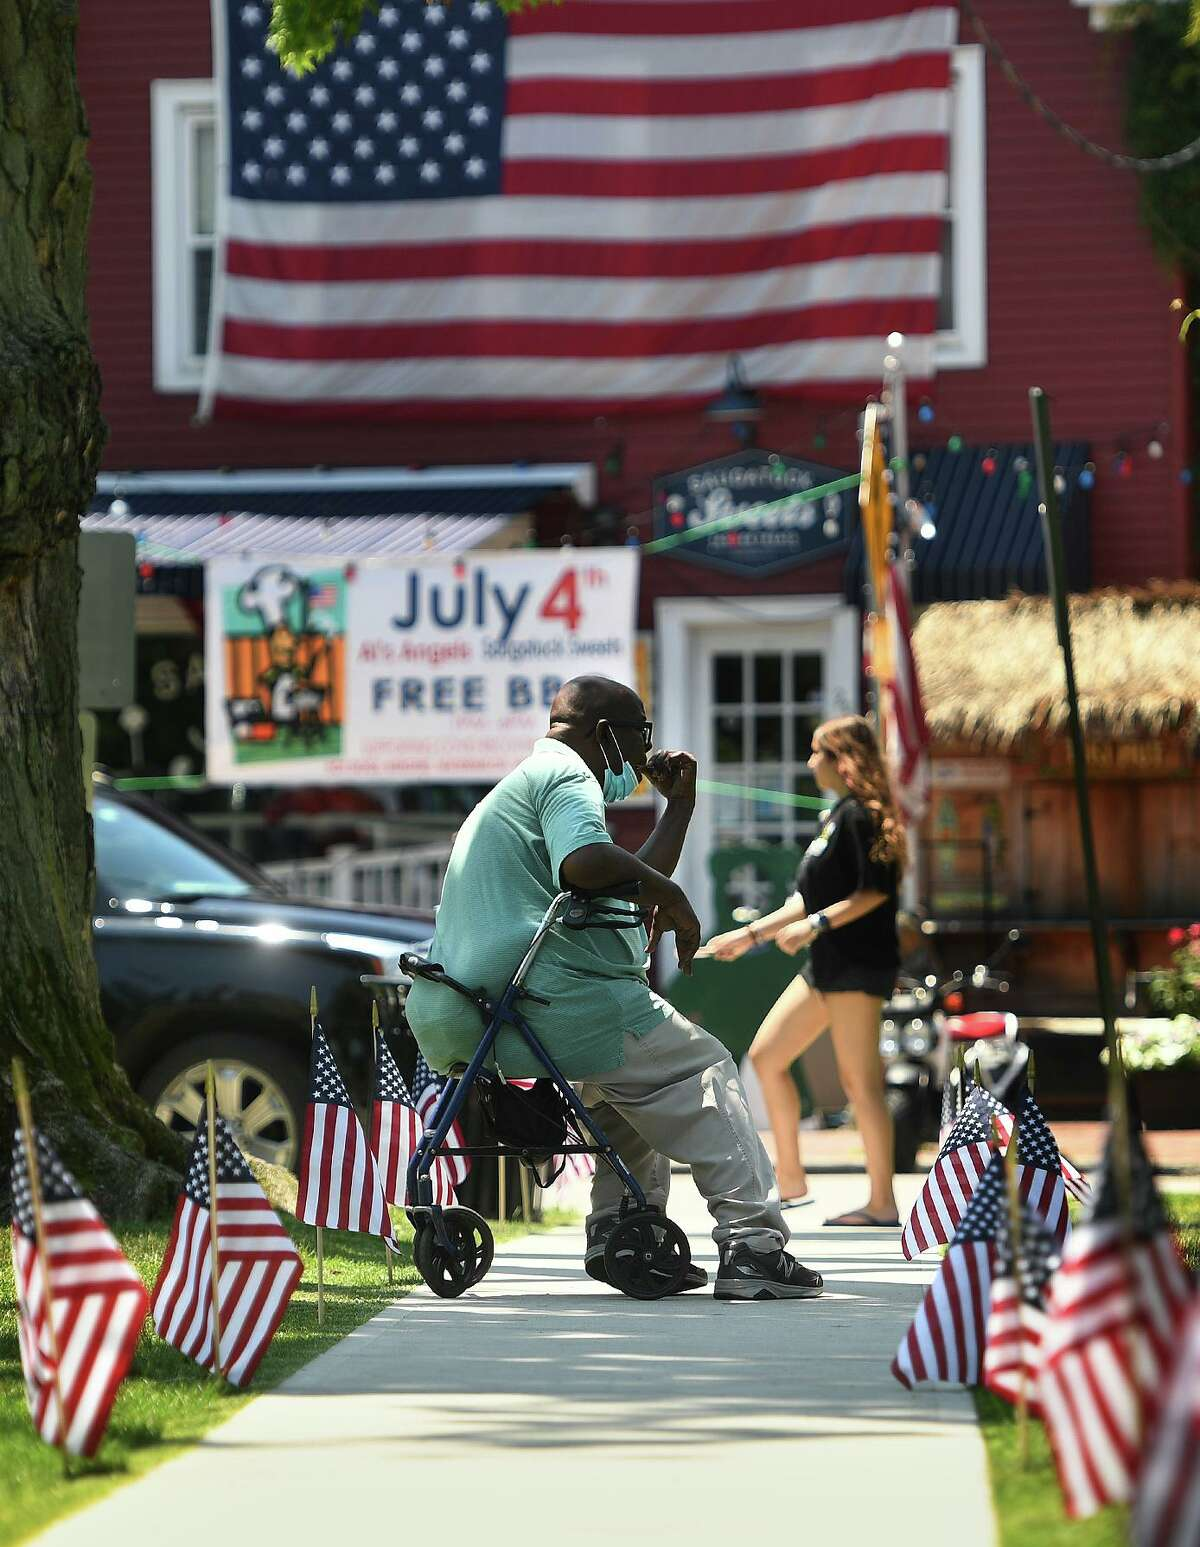 After flag banners were removed, American flags now line the sidewalks on Sherman Green in preparation for Independence Day in Fairfield, Conn. on Thursday, July 2, 2020.